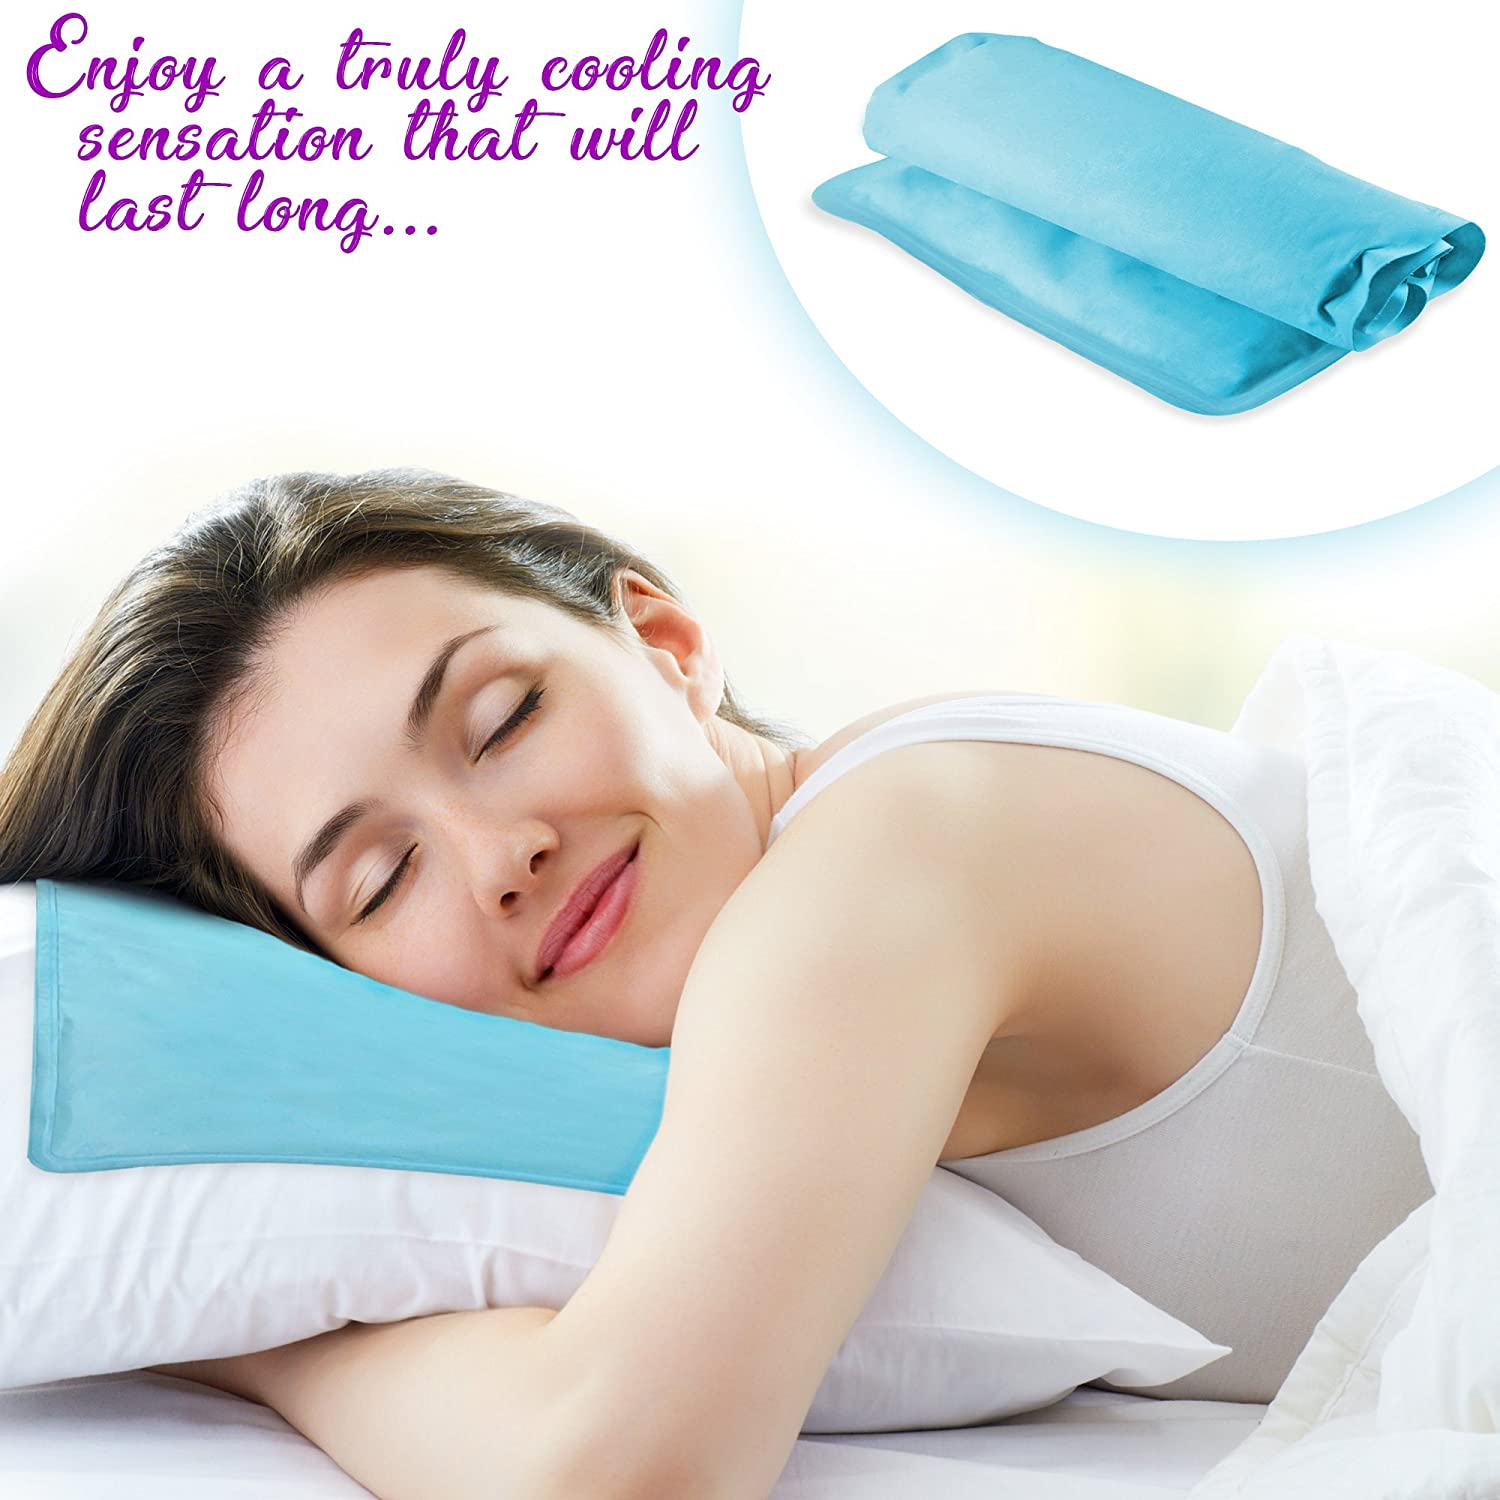 Relieves Neck Back Pain. Odourless Naturally Cooling Pad 55x30cm Soft Gel Cool Pillow Mat Insert No Water Filling Needed Helps with Migraines Hot Flashes Fevers Leak Proof for Better Sleep